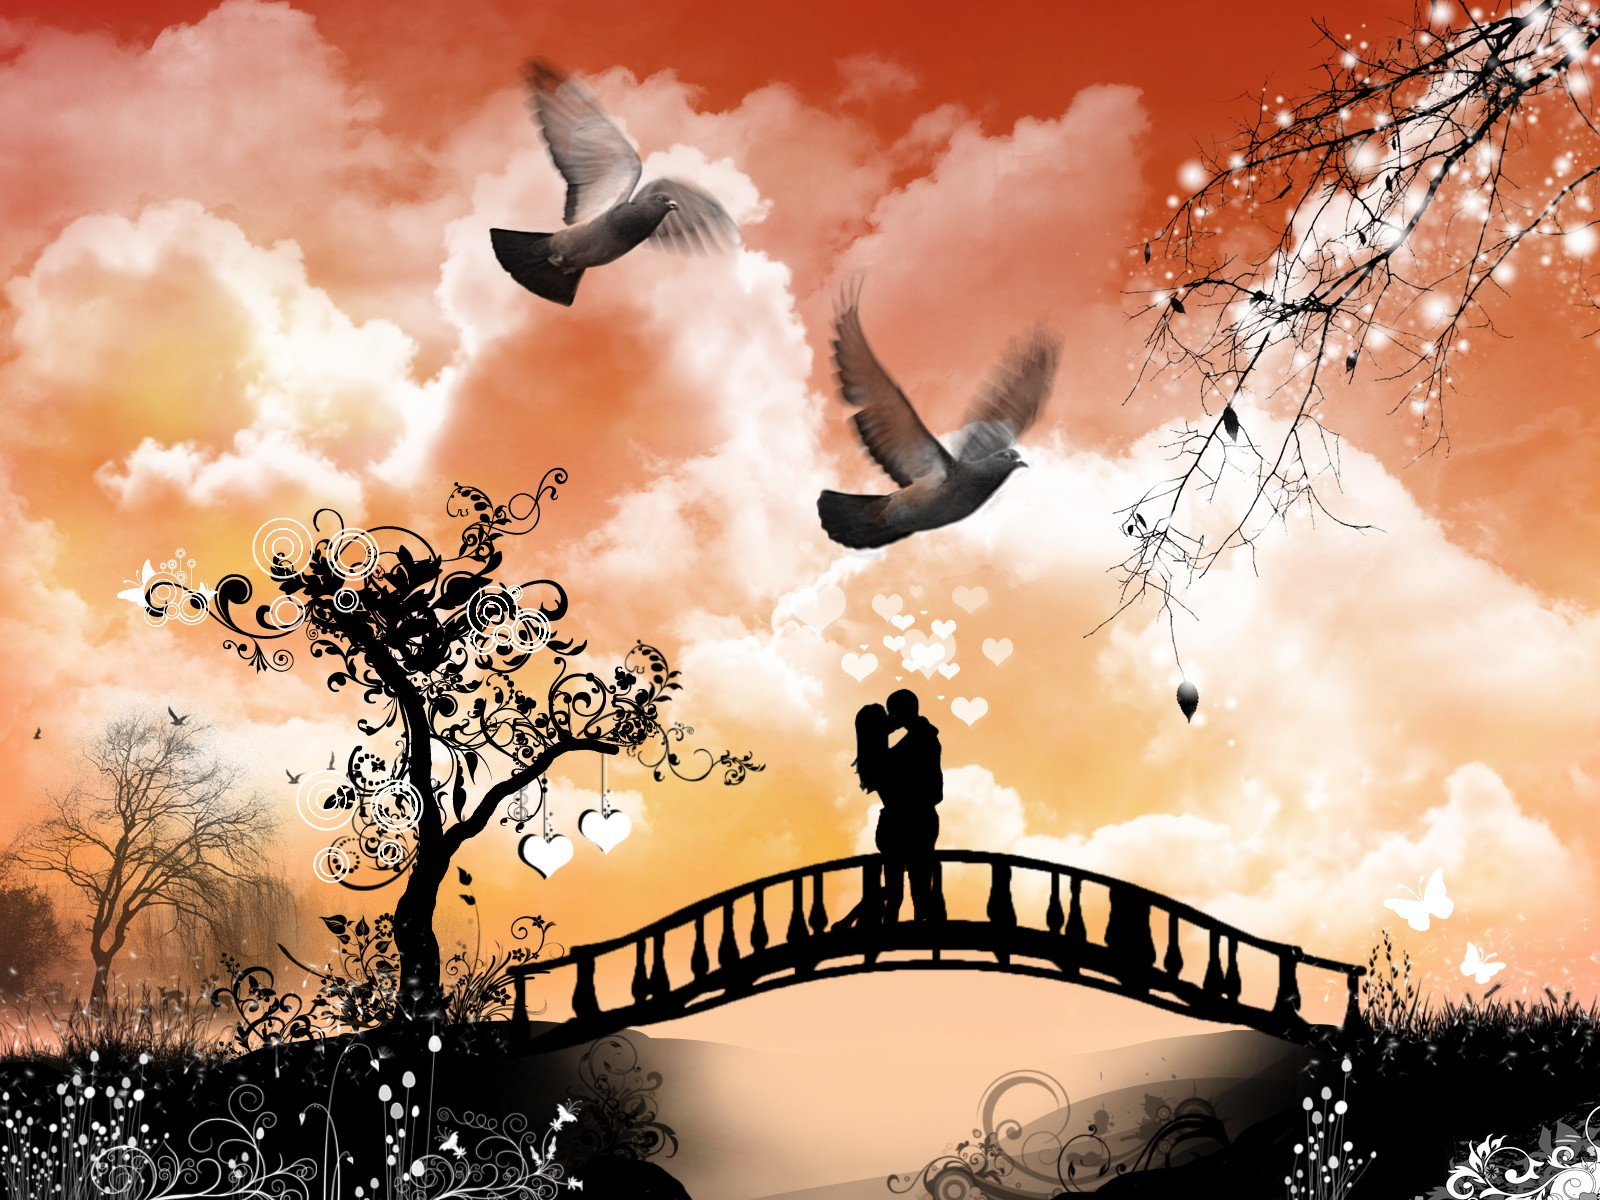 Wallpaper collection Romantic Love couple kissing: Wallpaper Love Kiss